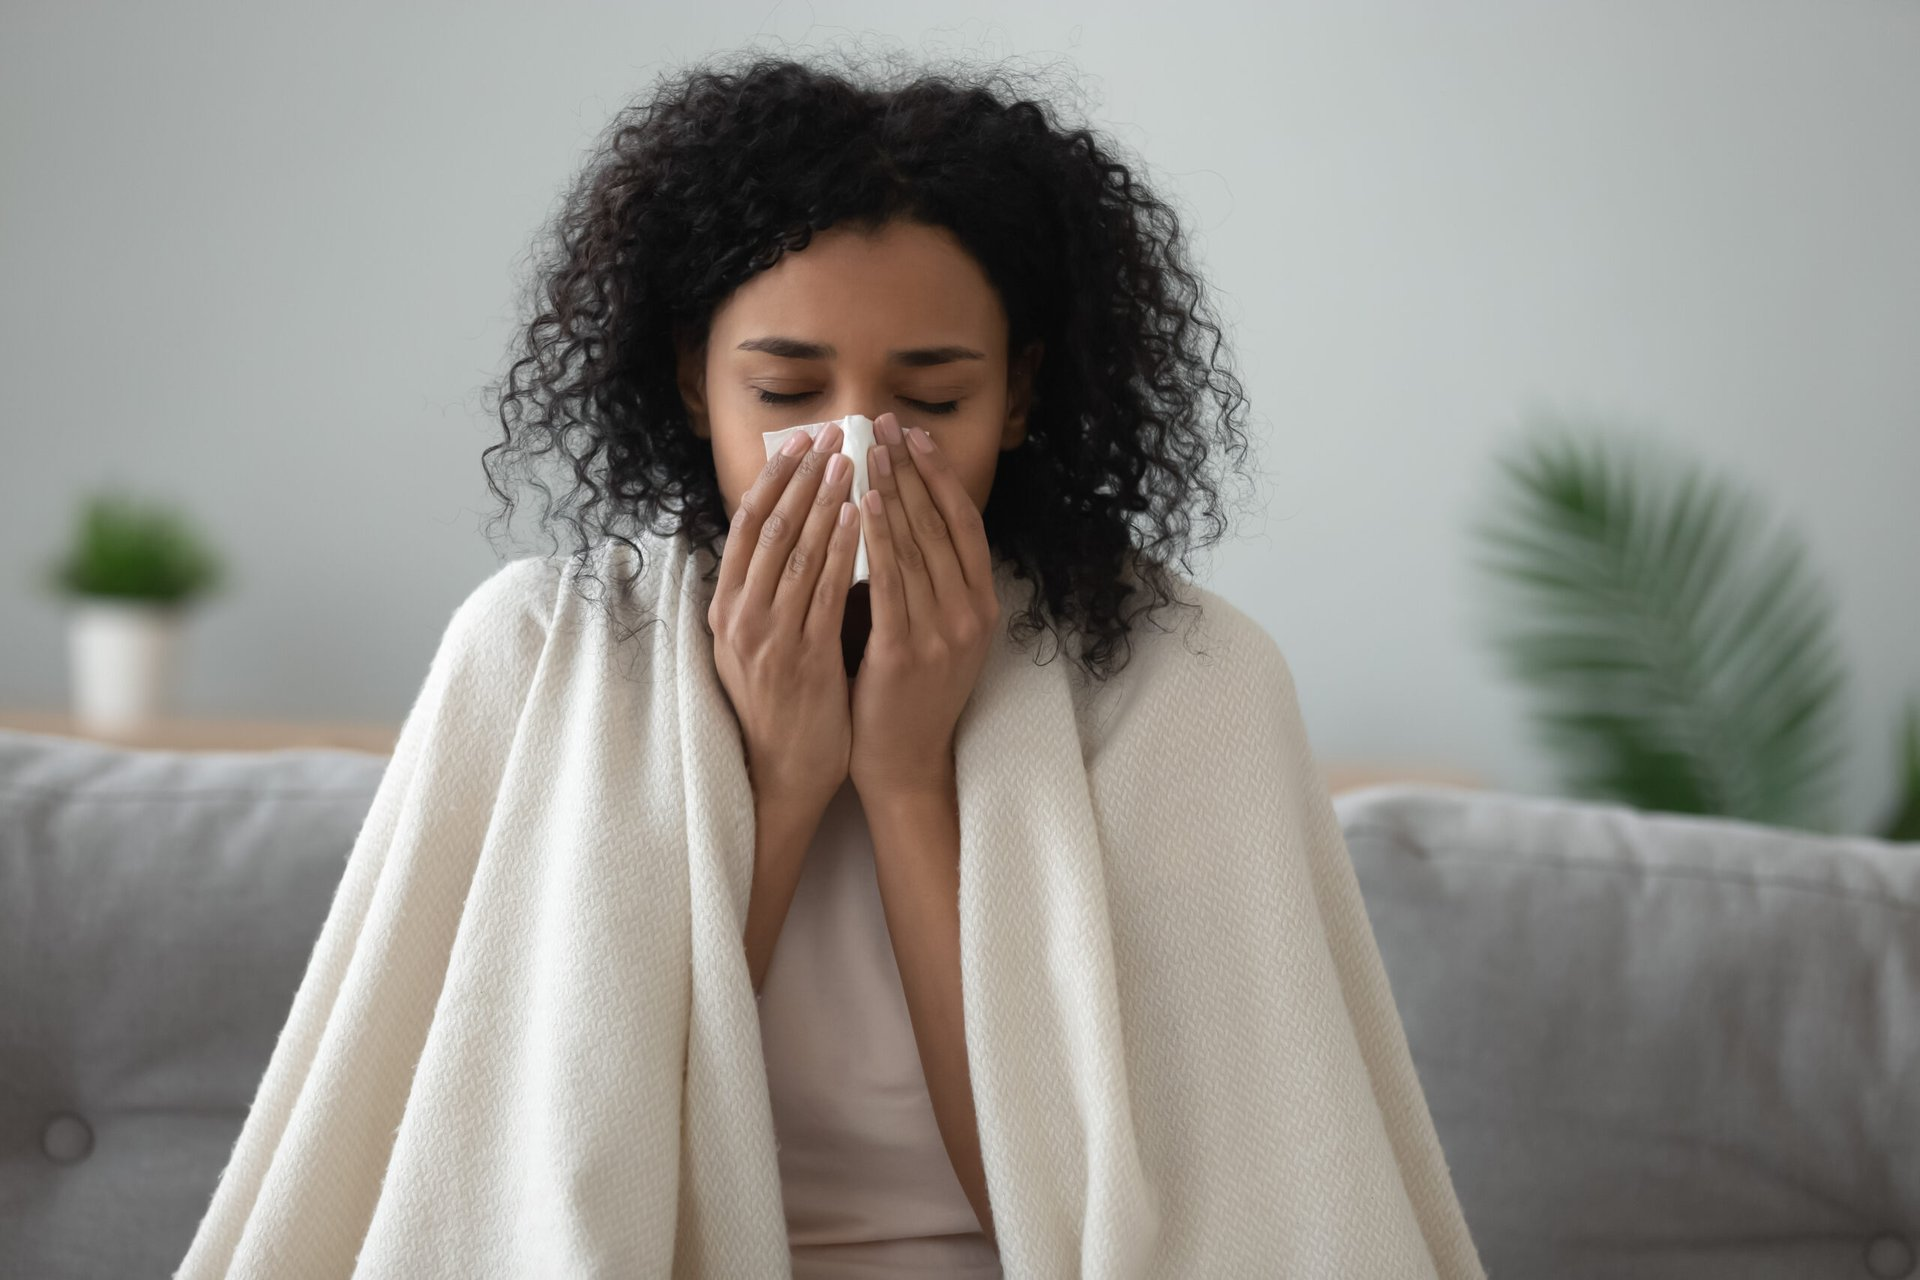 Woman ill with the flu